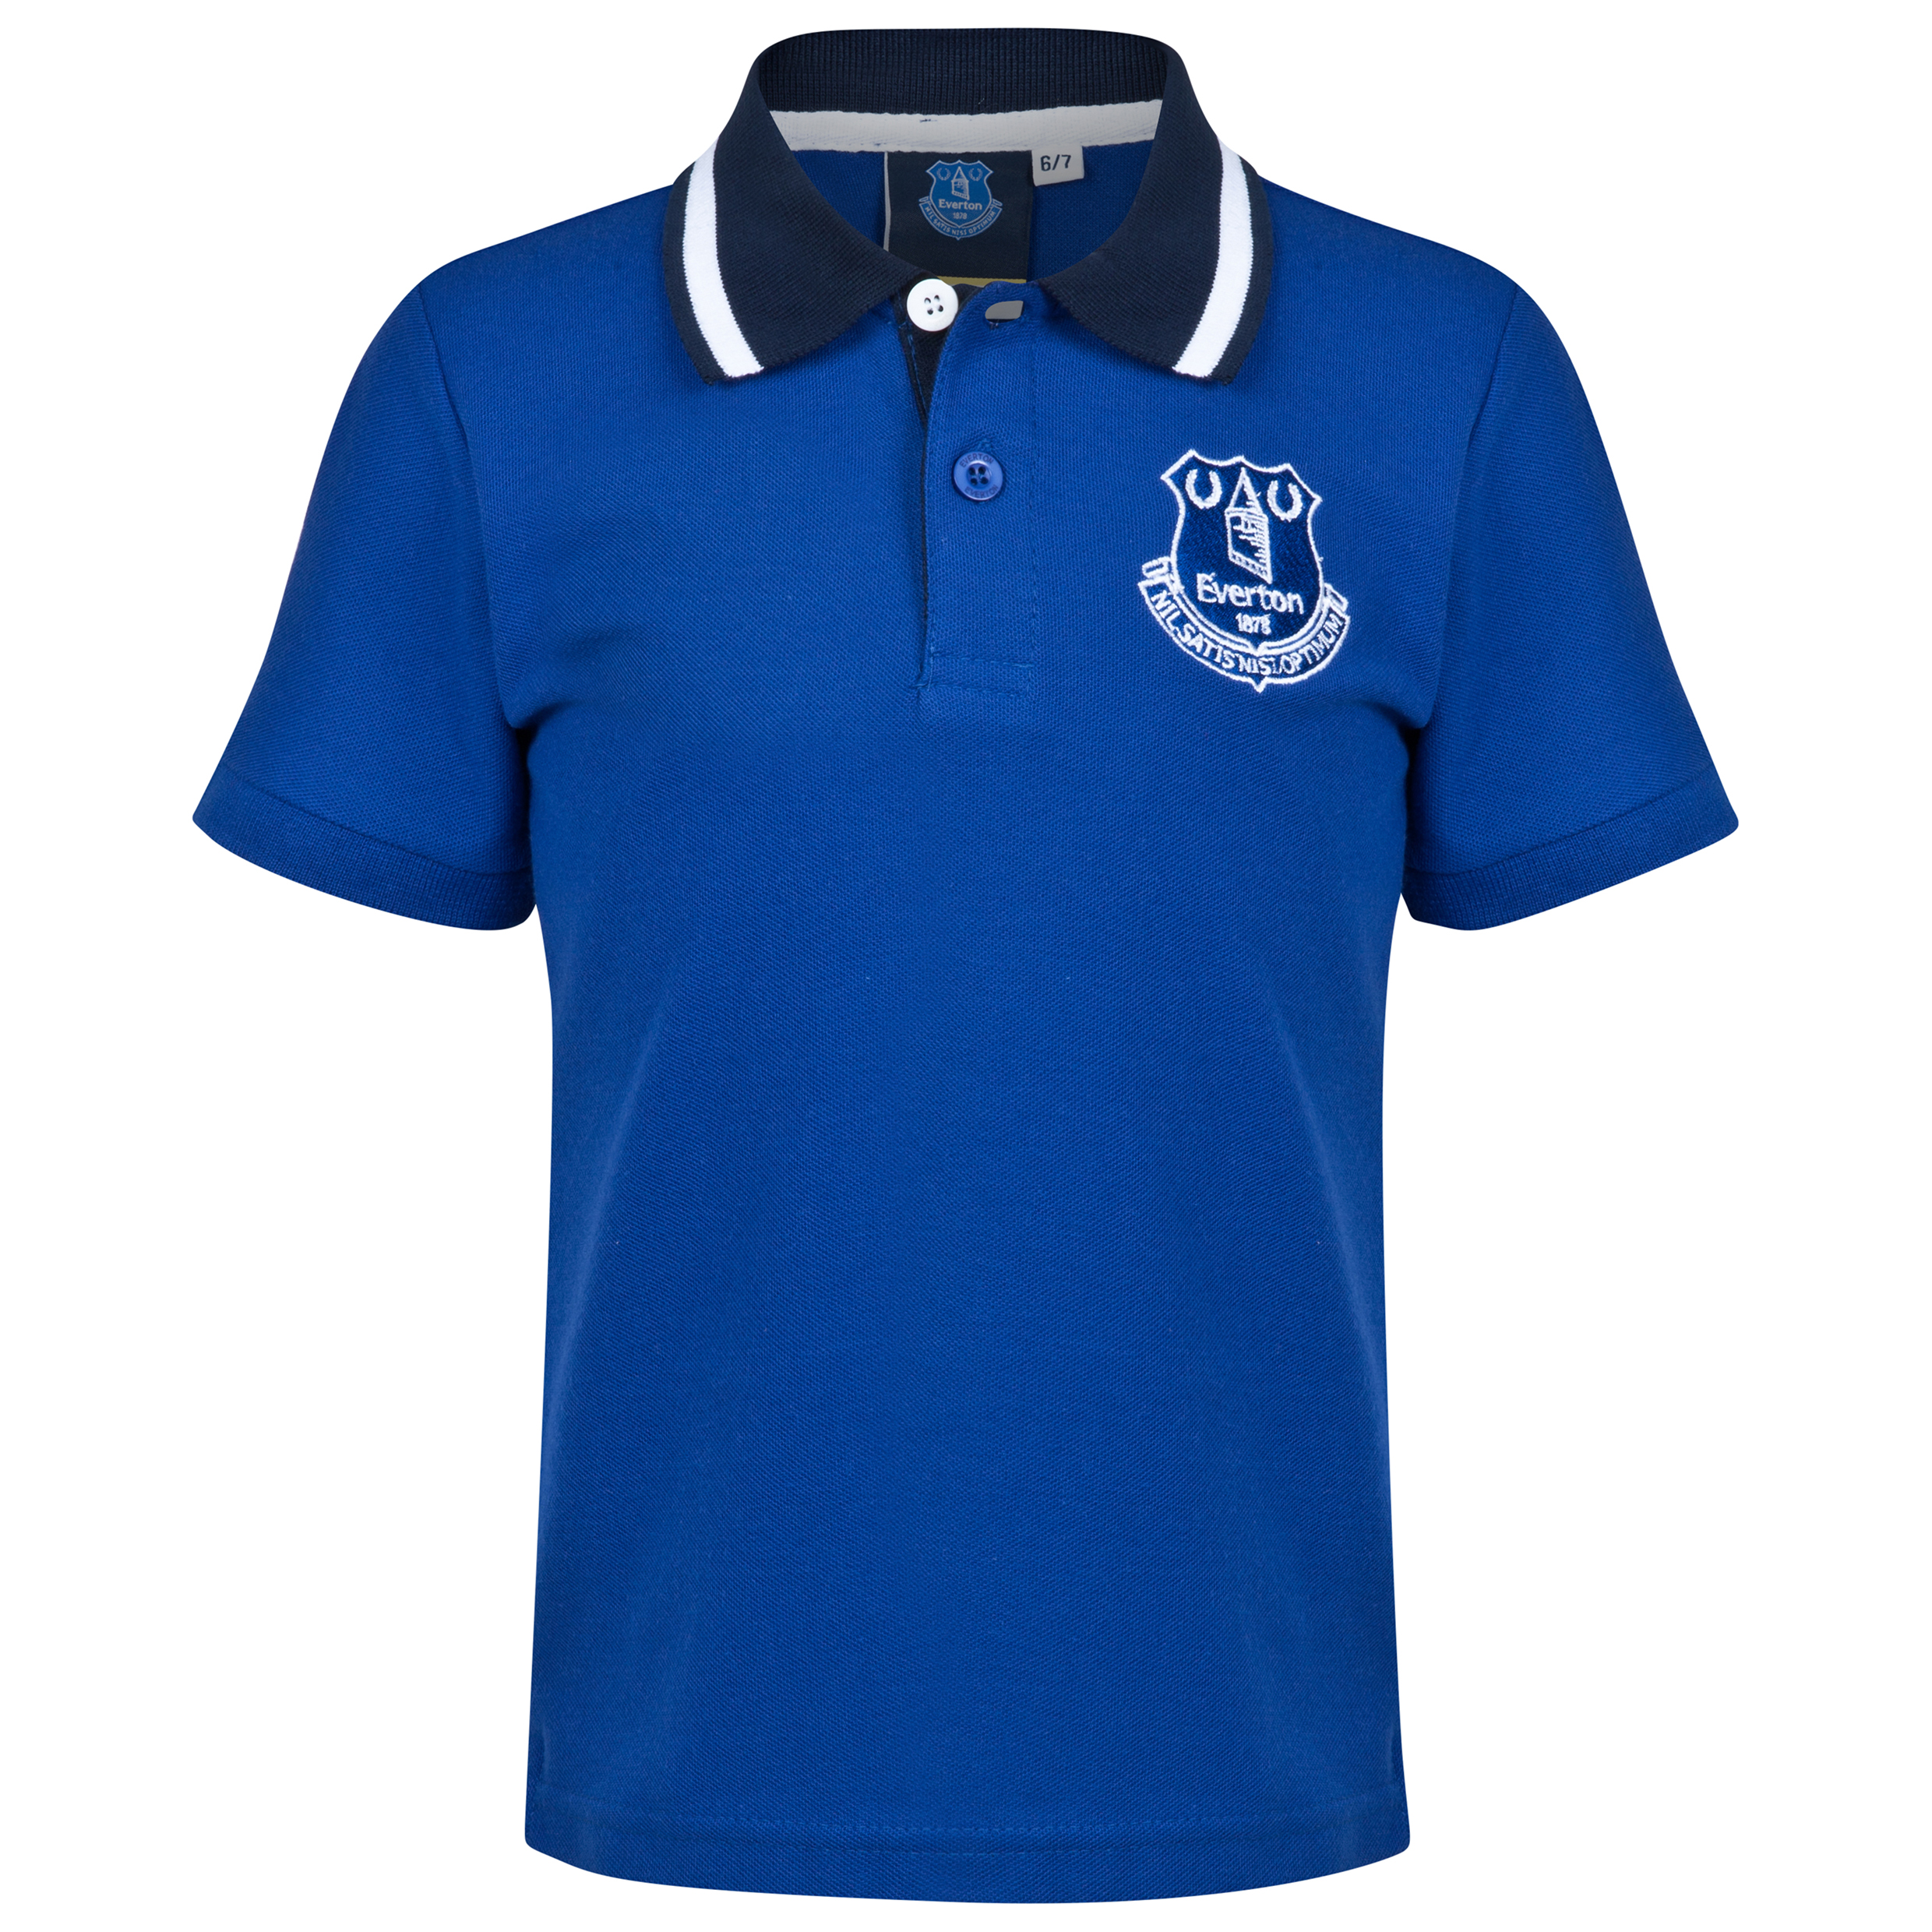 Everton Essential Polo Shirt - Everton Blue - Infant Boys